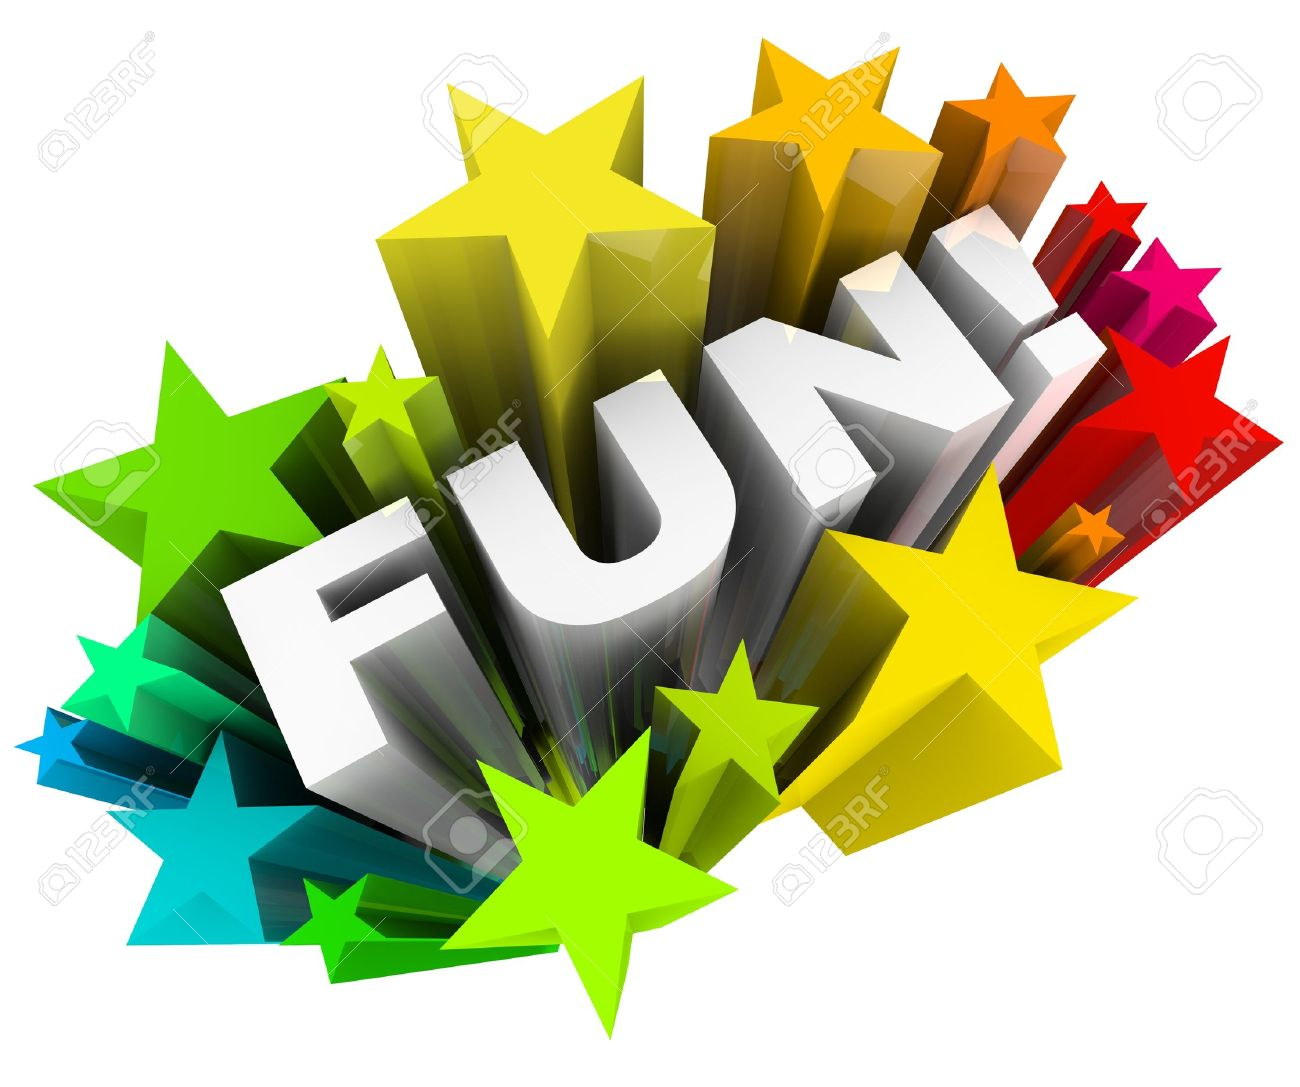 the word fun in